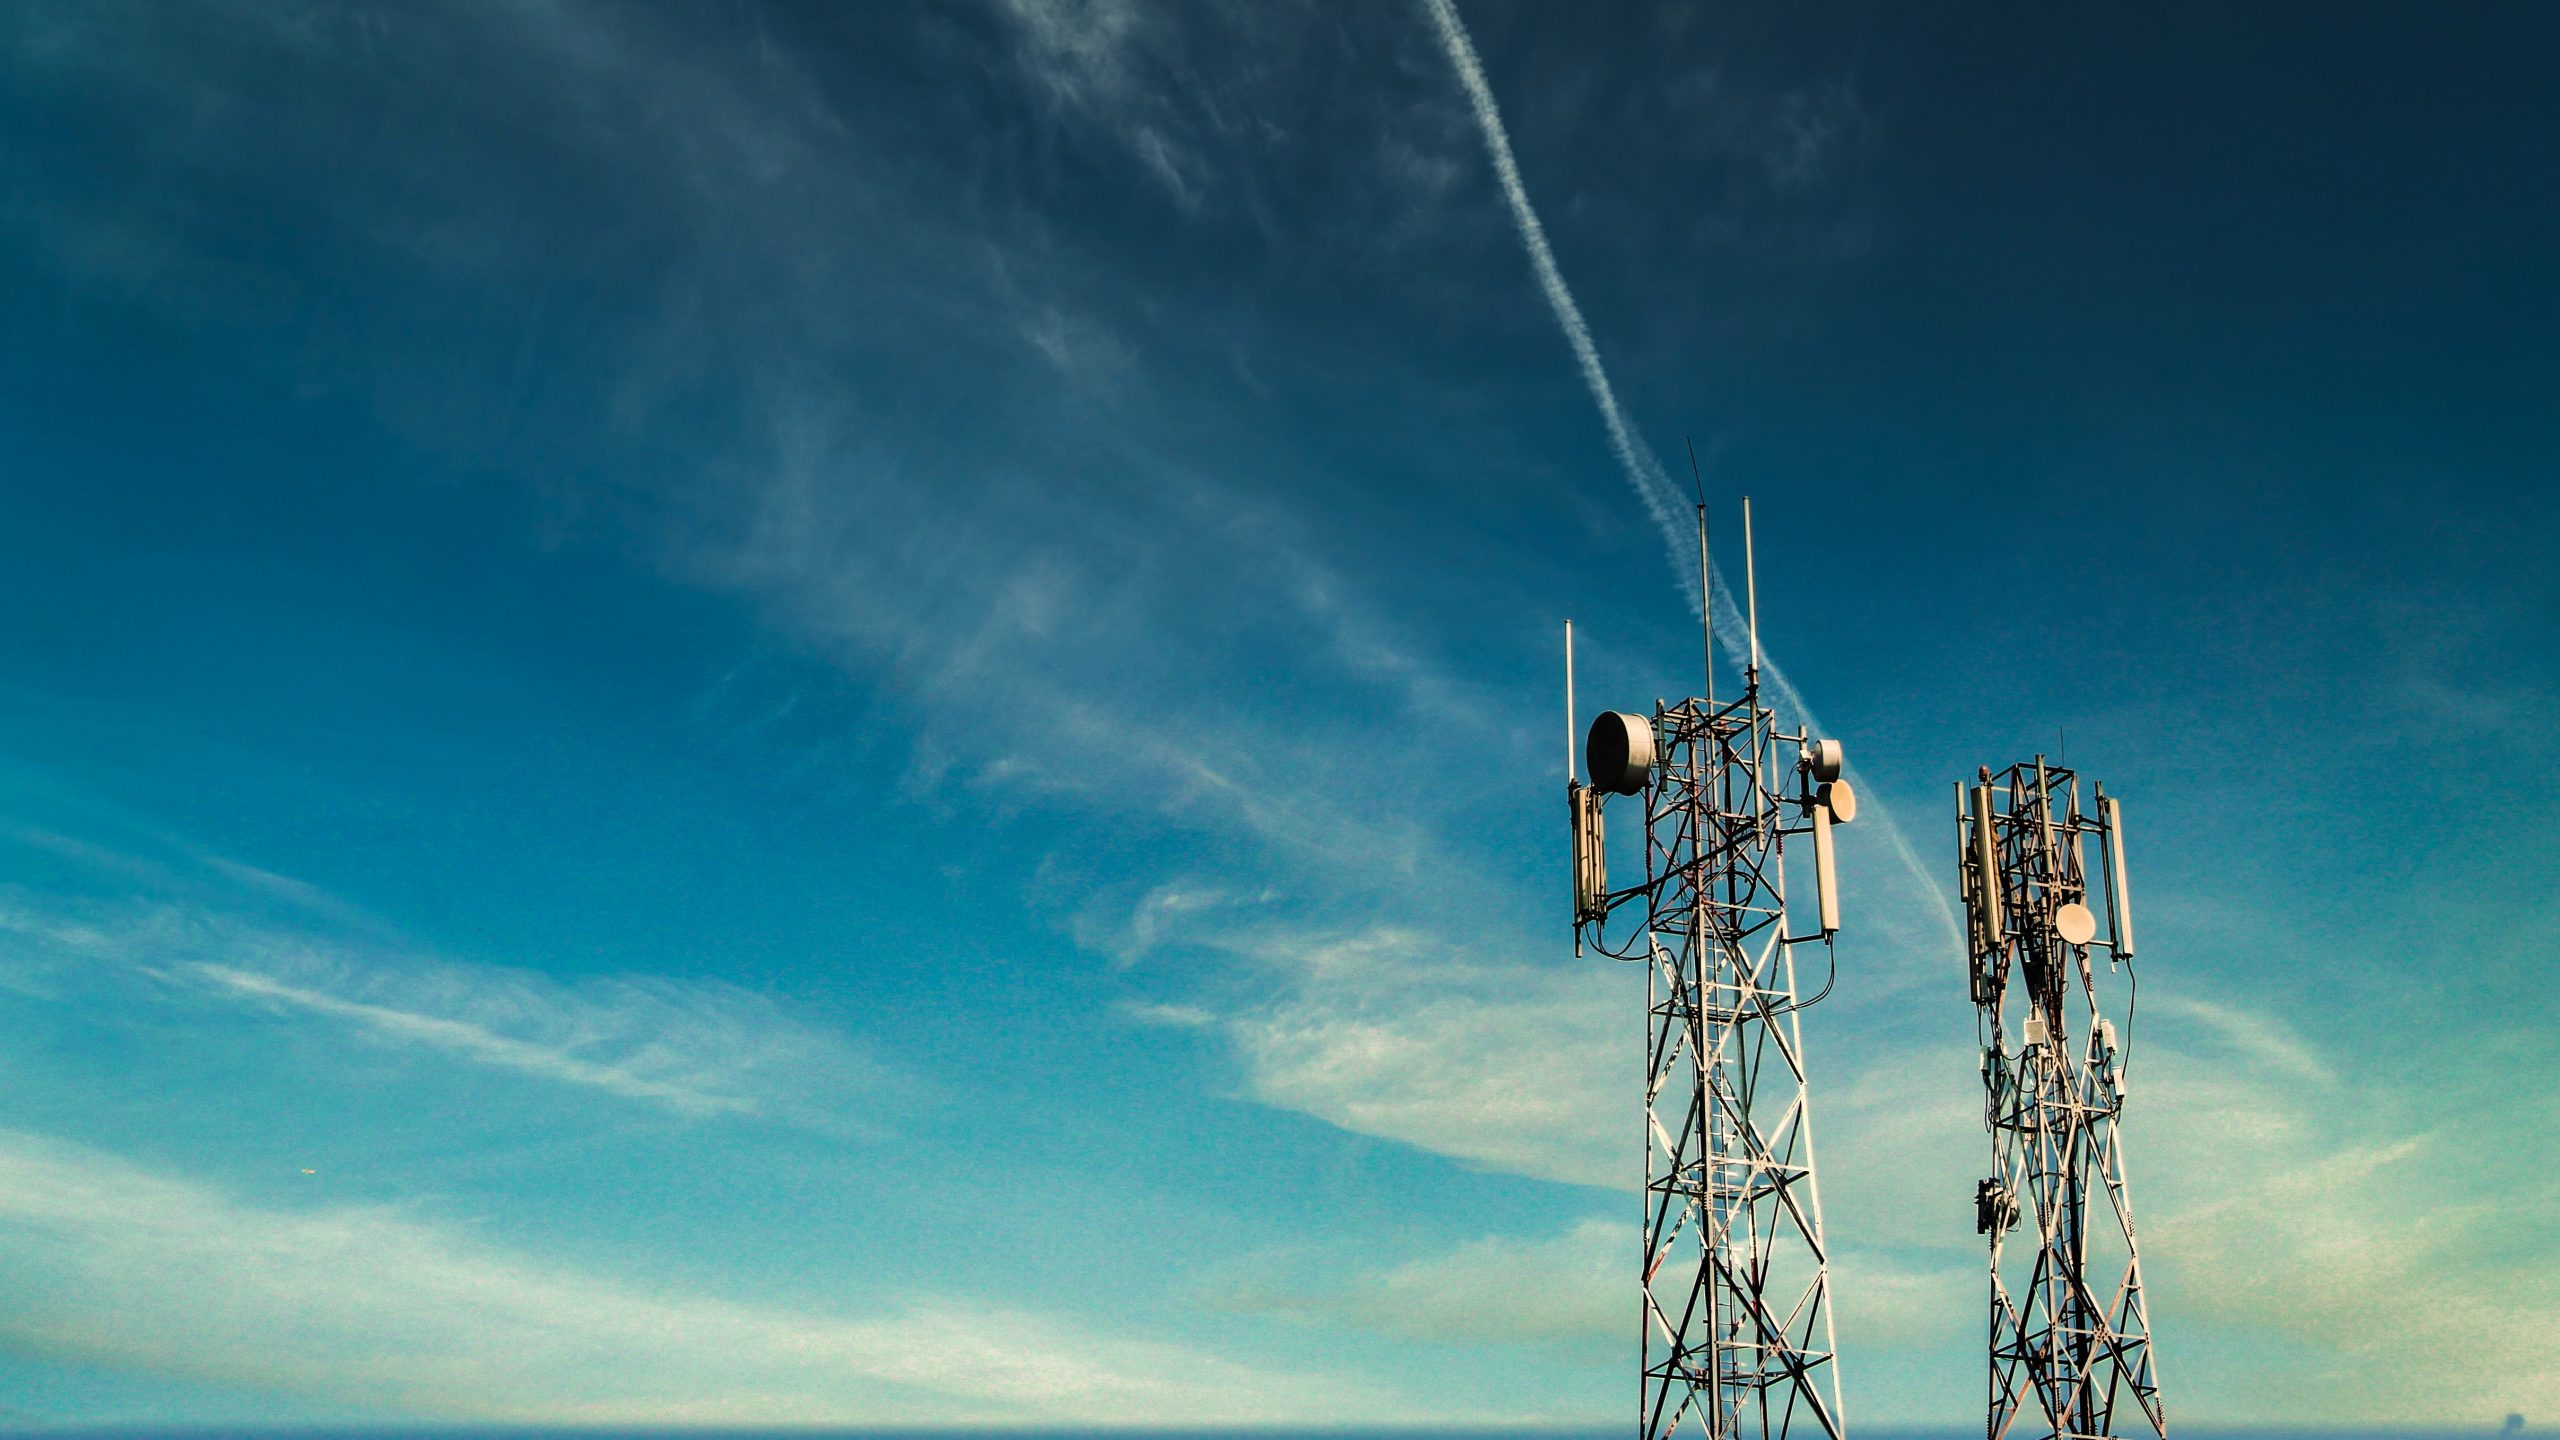 Globe partners with PhilTower for aggressive network builds in NCR, Luzon